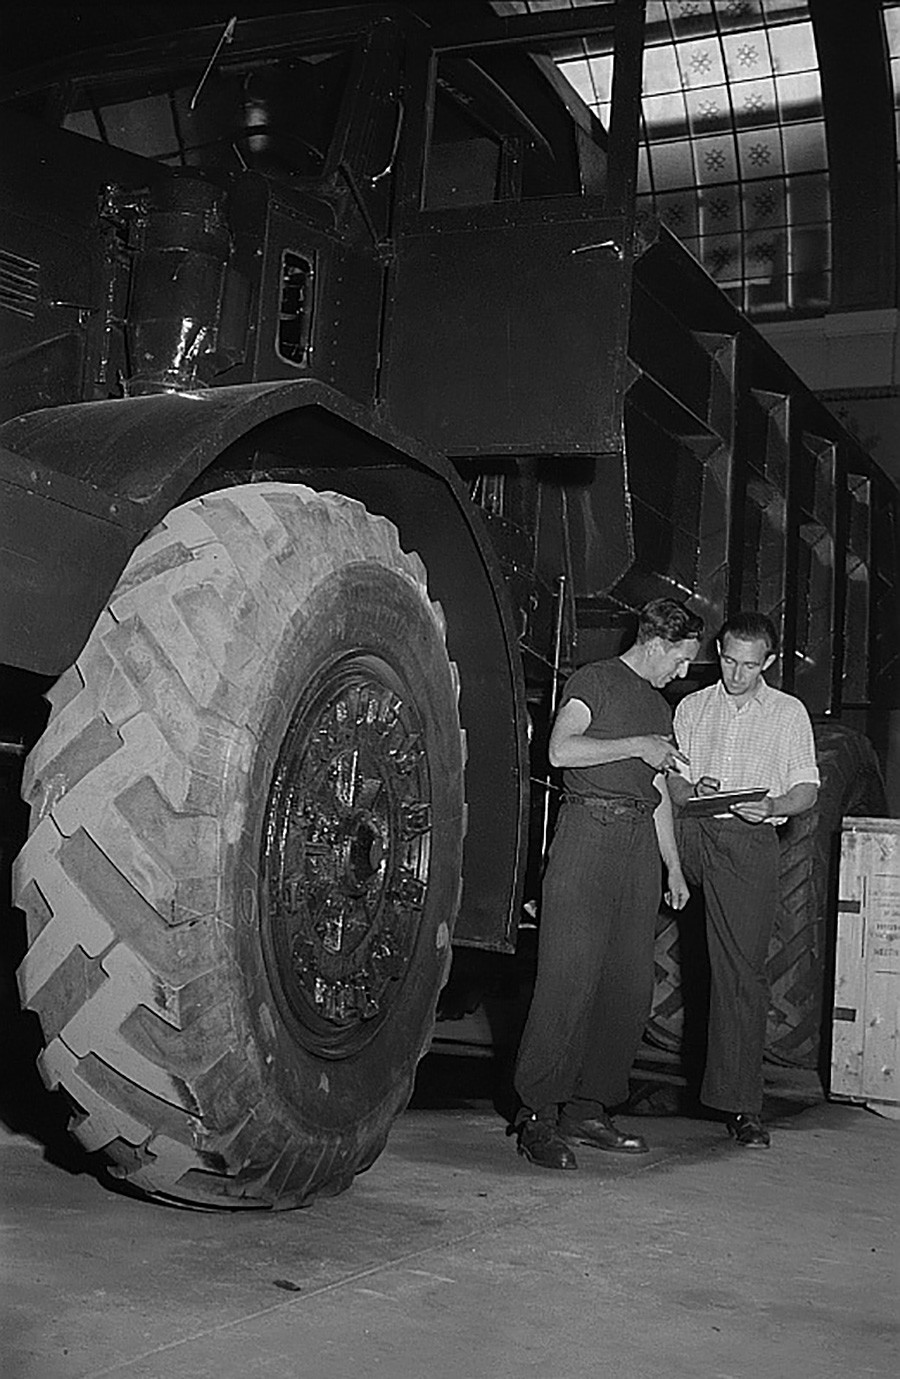 Wheel of a MAZ-525 dump truck, 1953